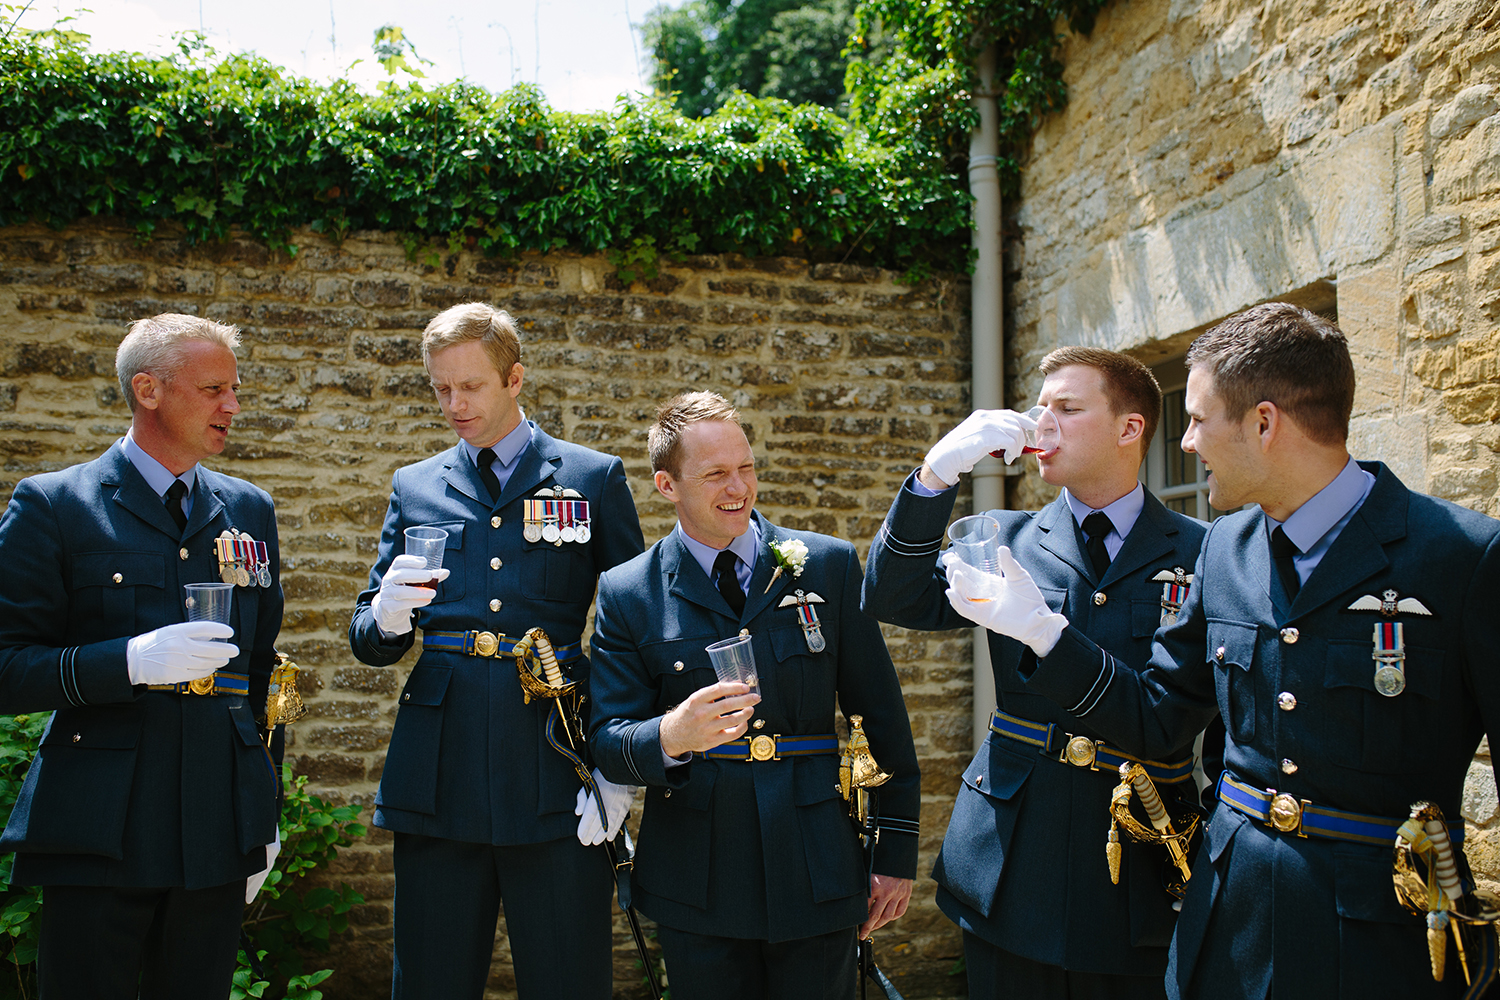 slaughters-manor-house-gloucester-wedding-photography-11.jpg